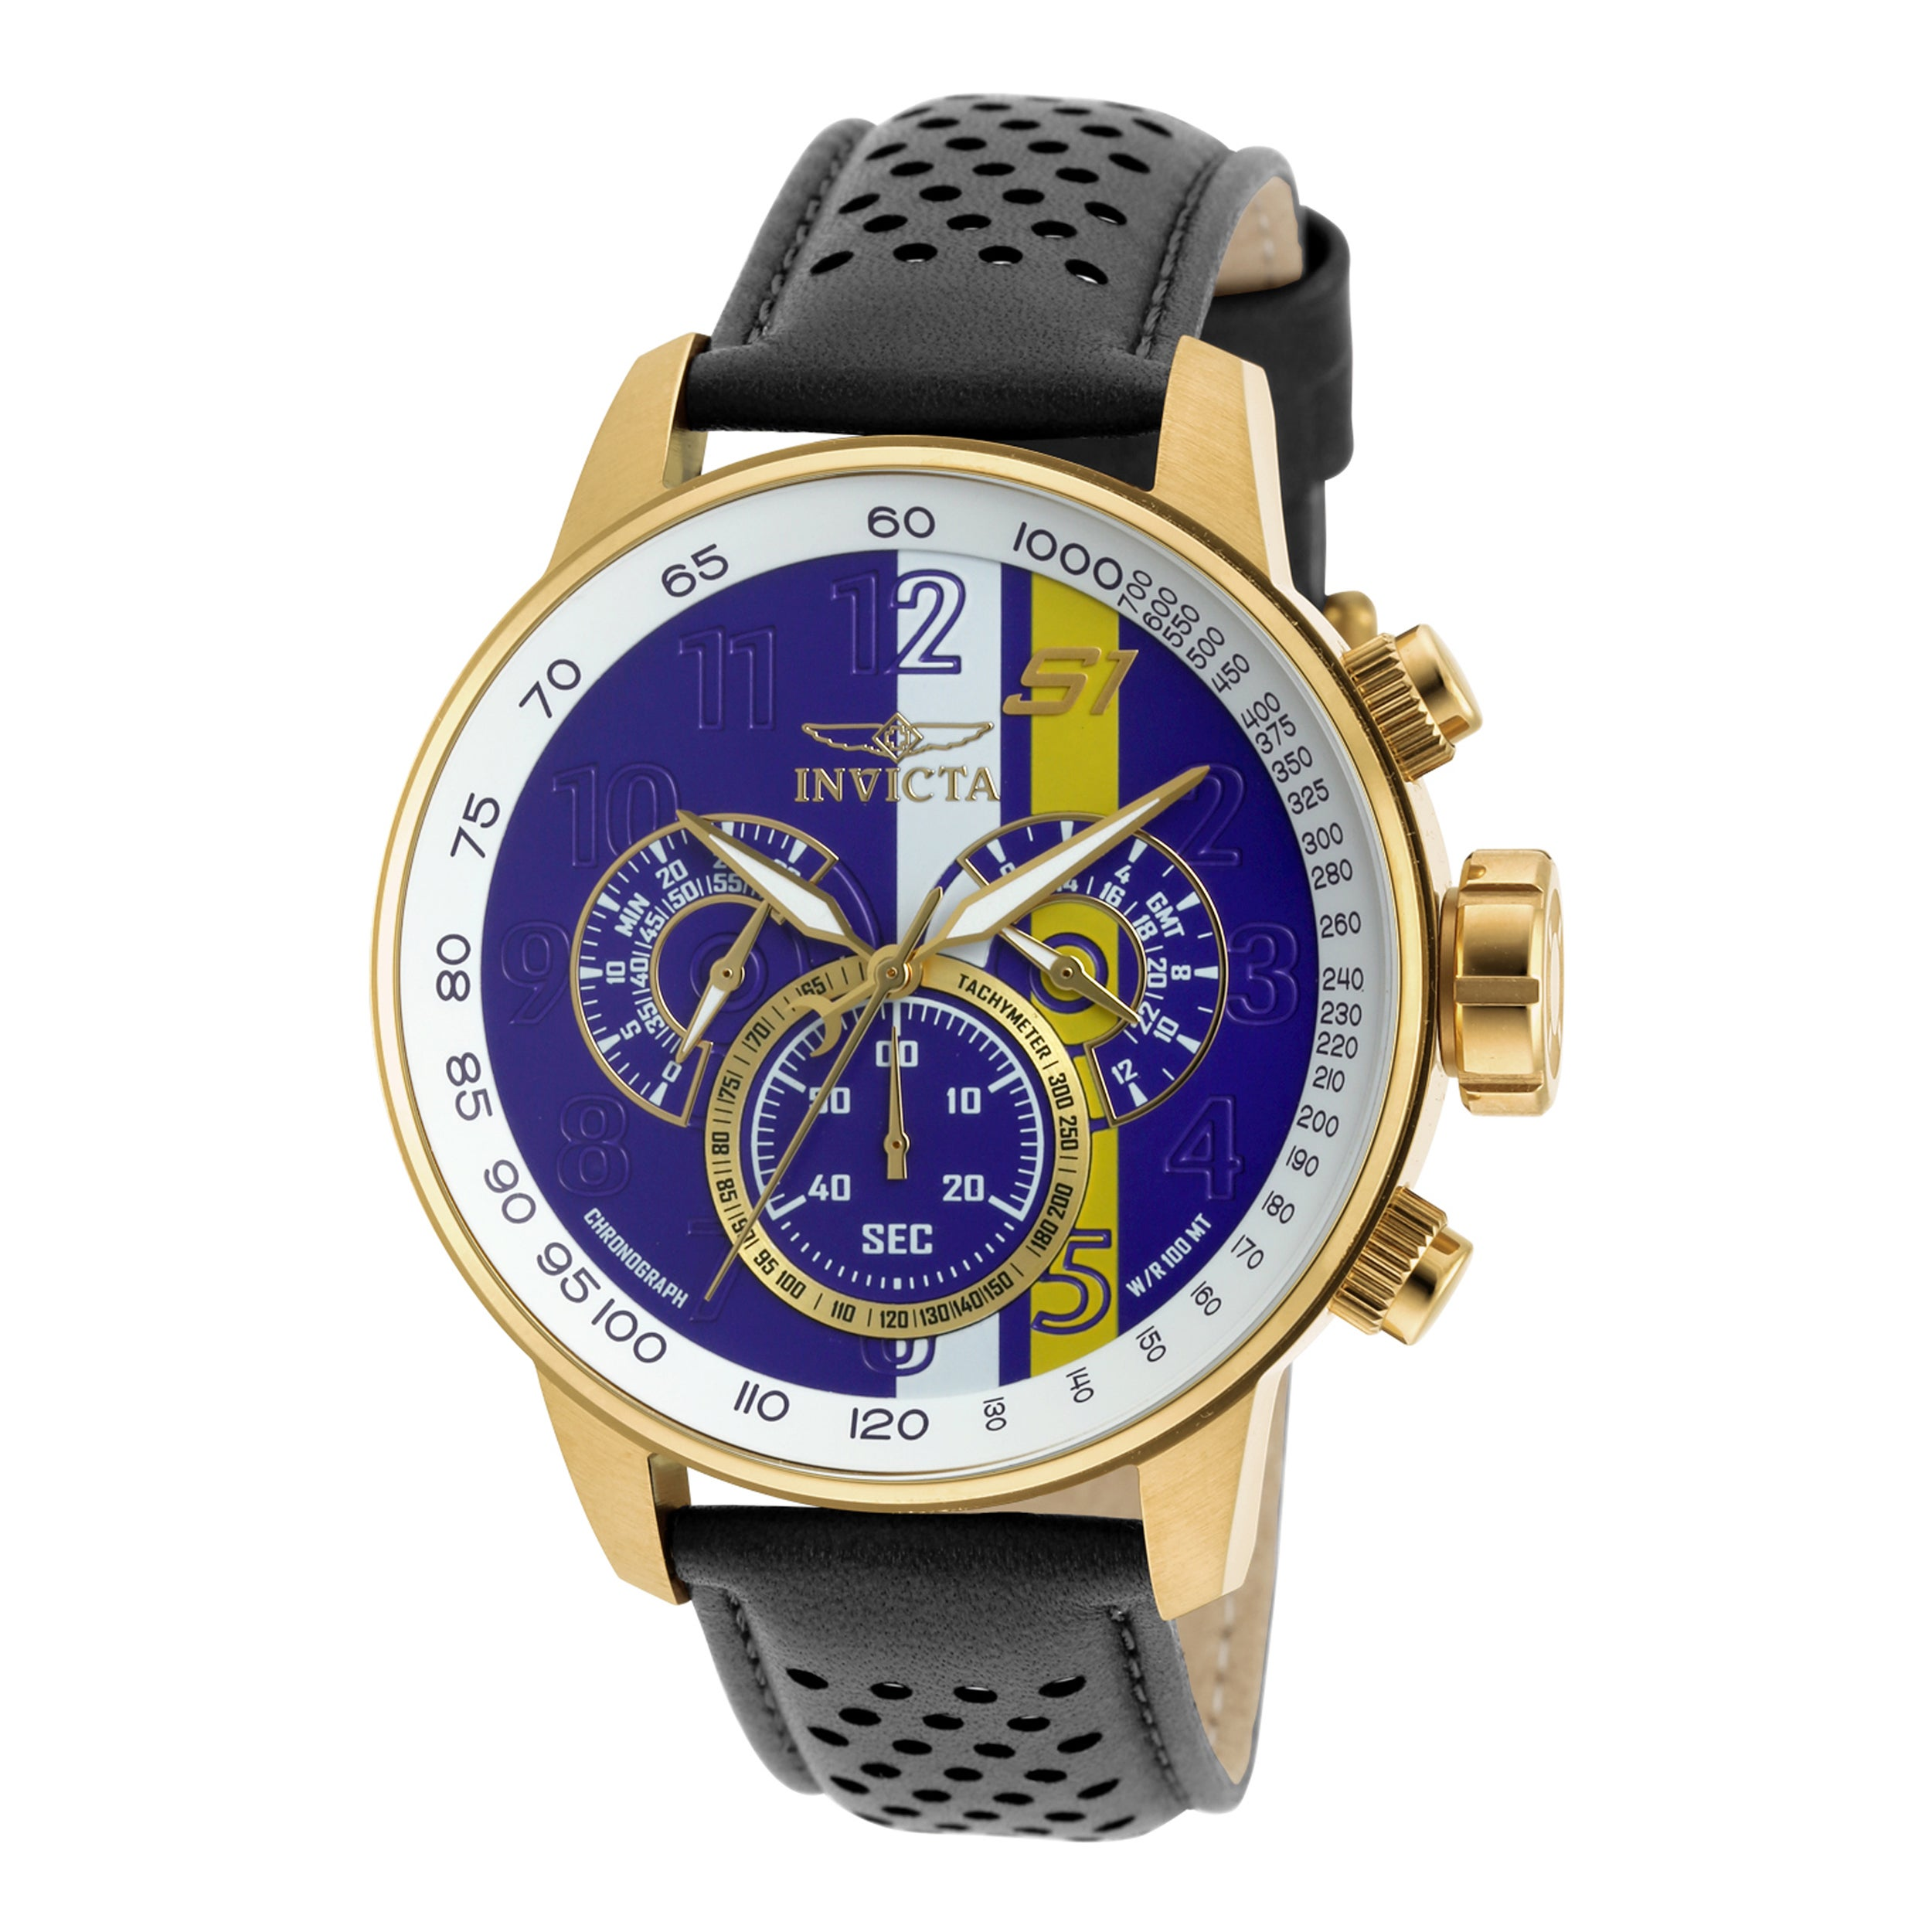 35debdbc2 Shop Invicta Men's 19903 S1 Rally Quartz Multifunction Purple, White,  Yellow Dial Watch - Free Shipping Today - Overstock - 10631262